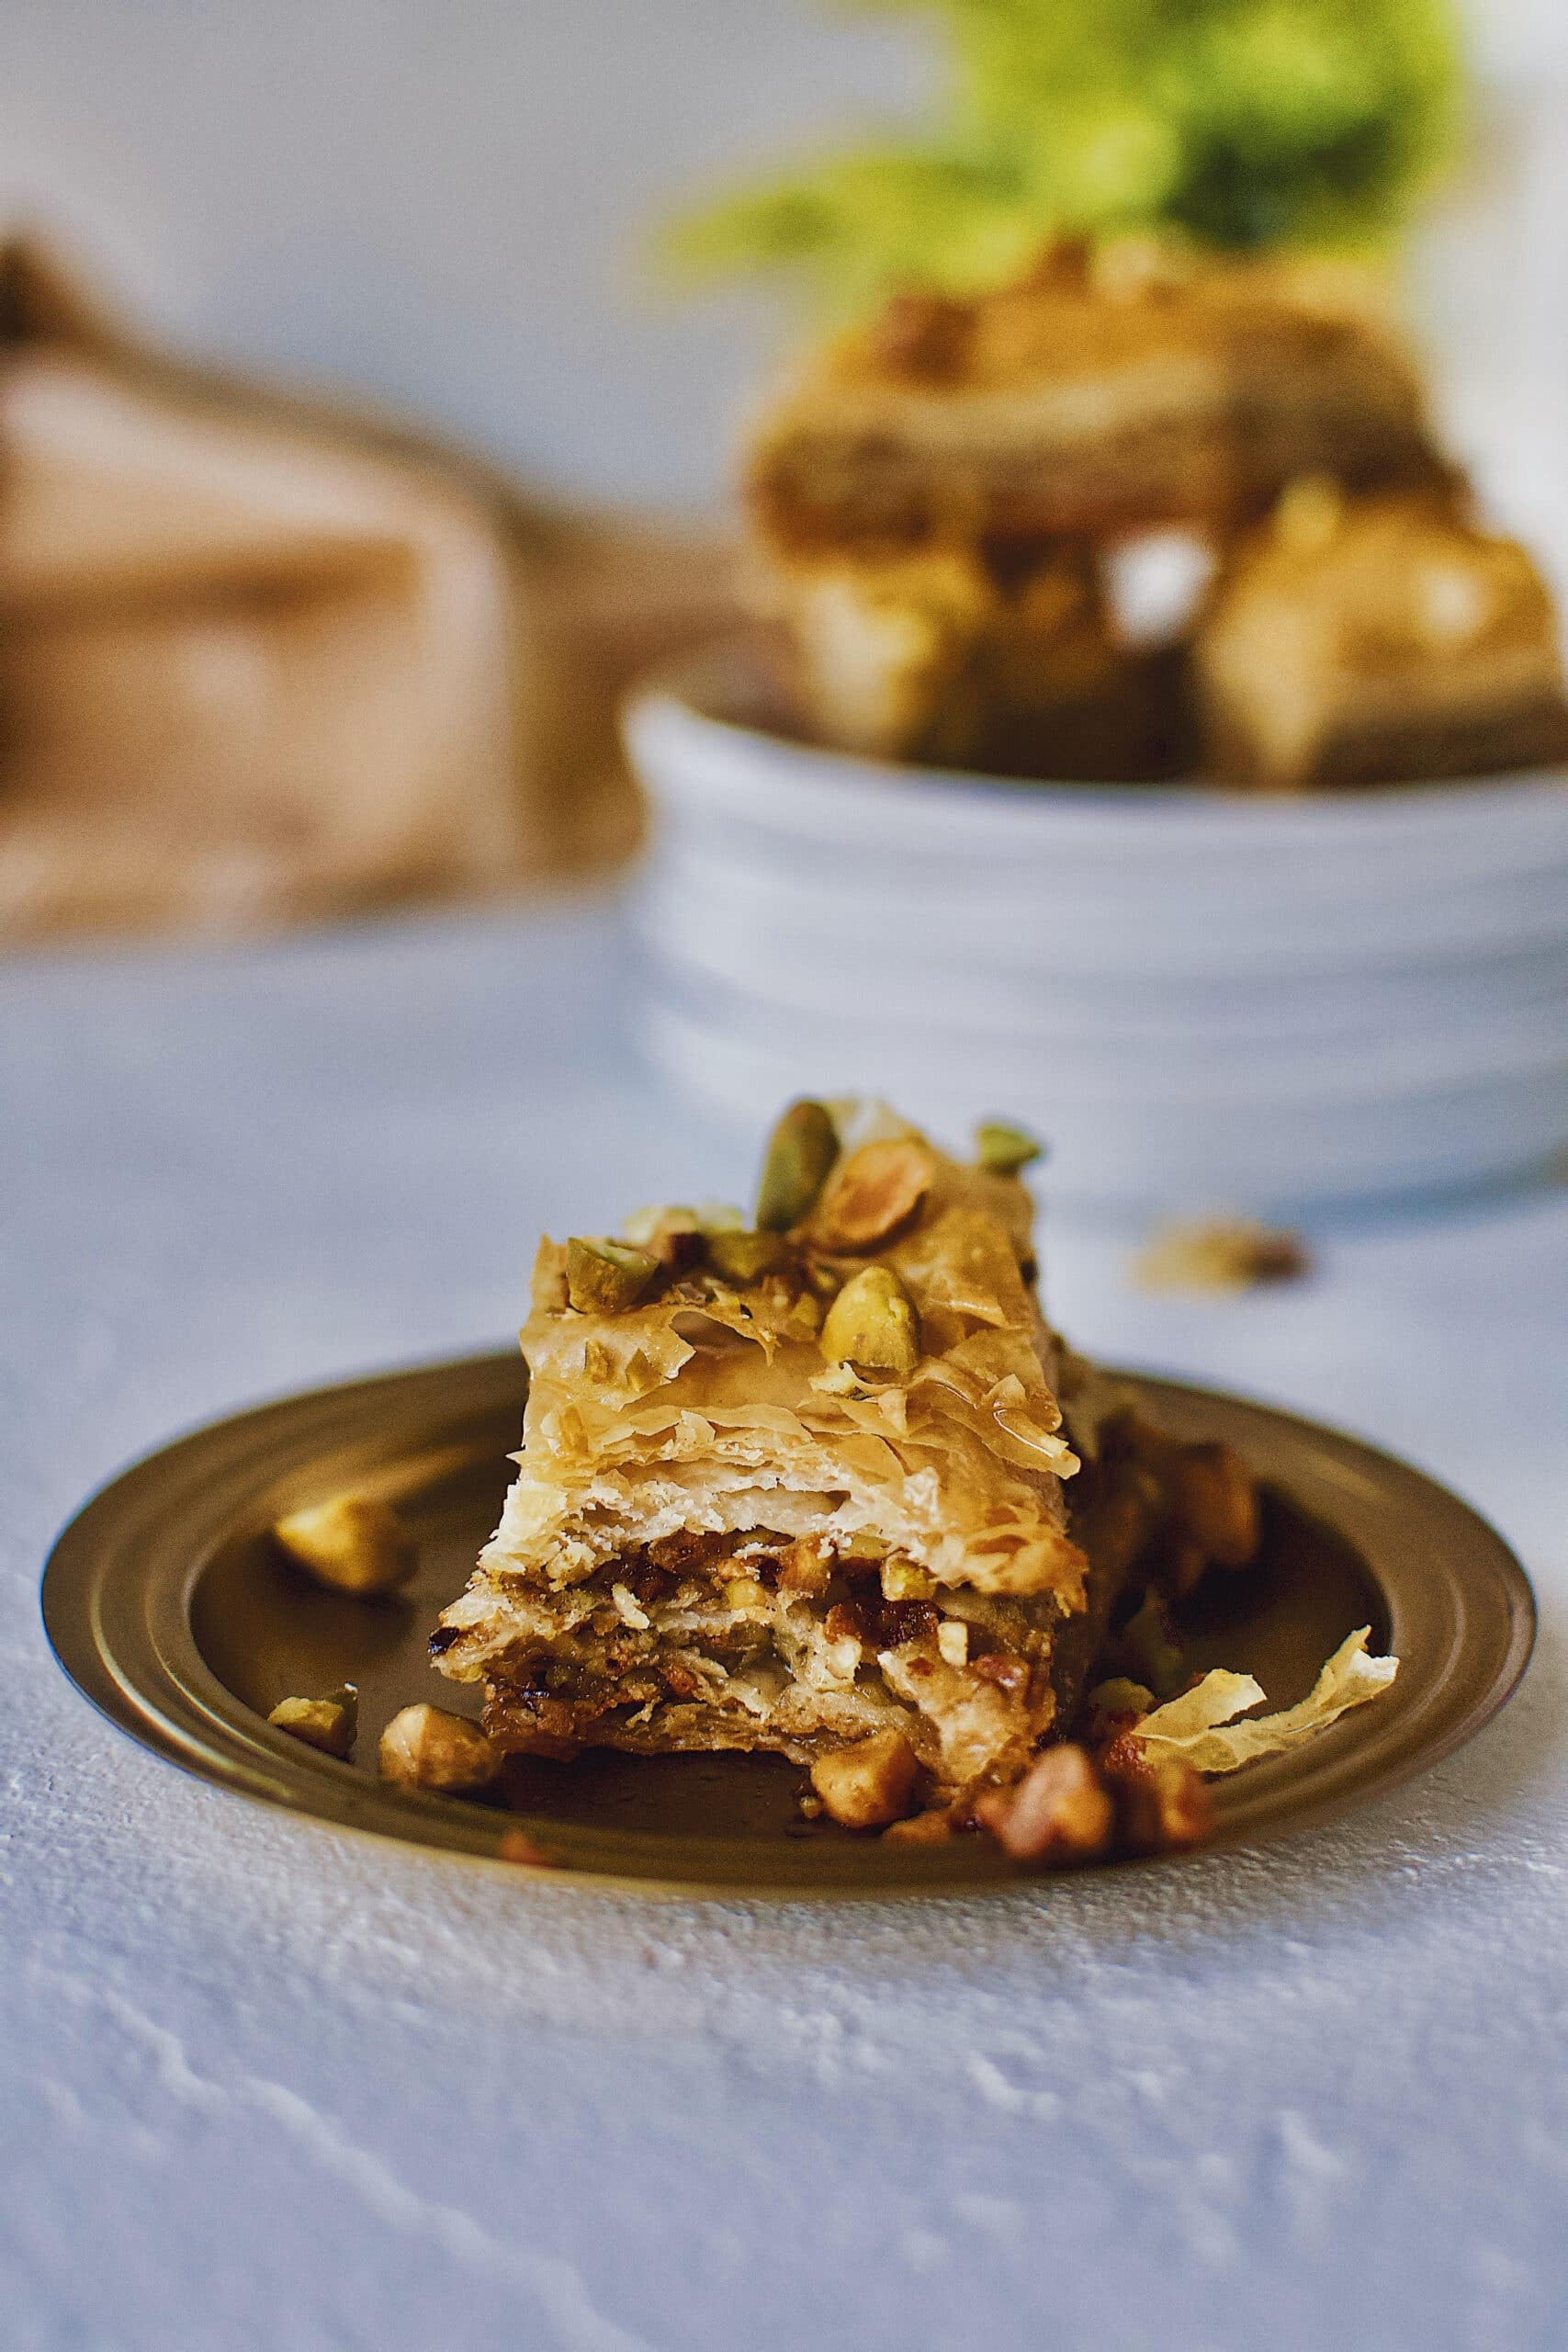 Joanna Gaines recipe for Baklava served right out of the baking dish on a gold plate.